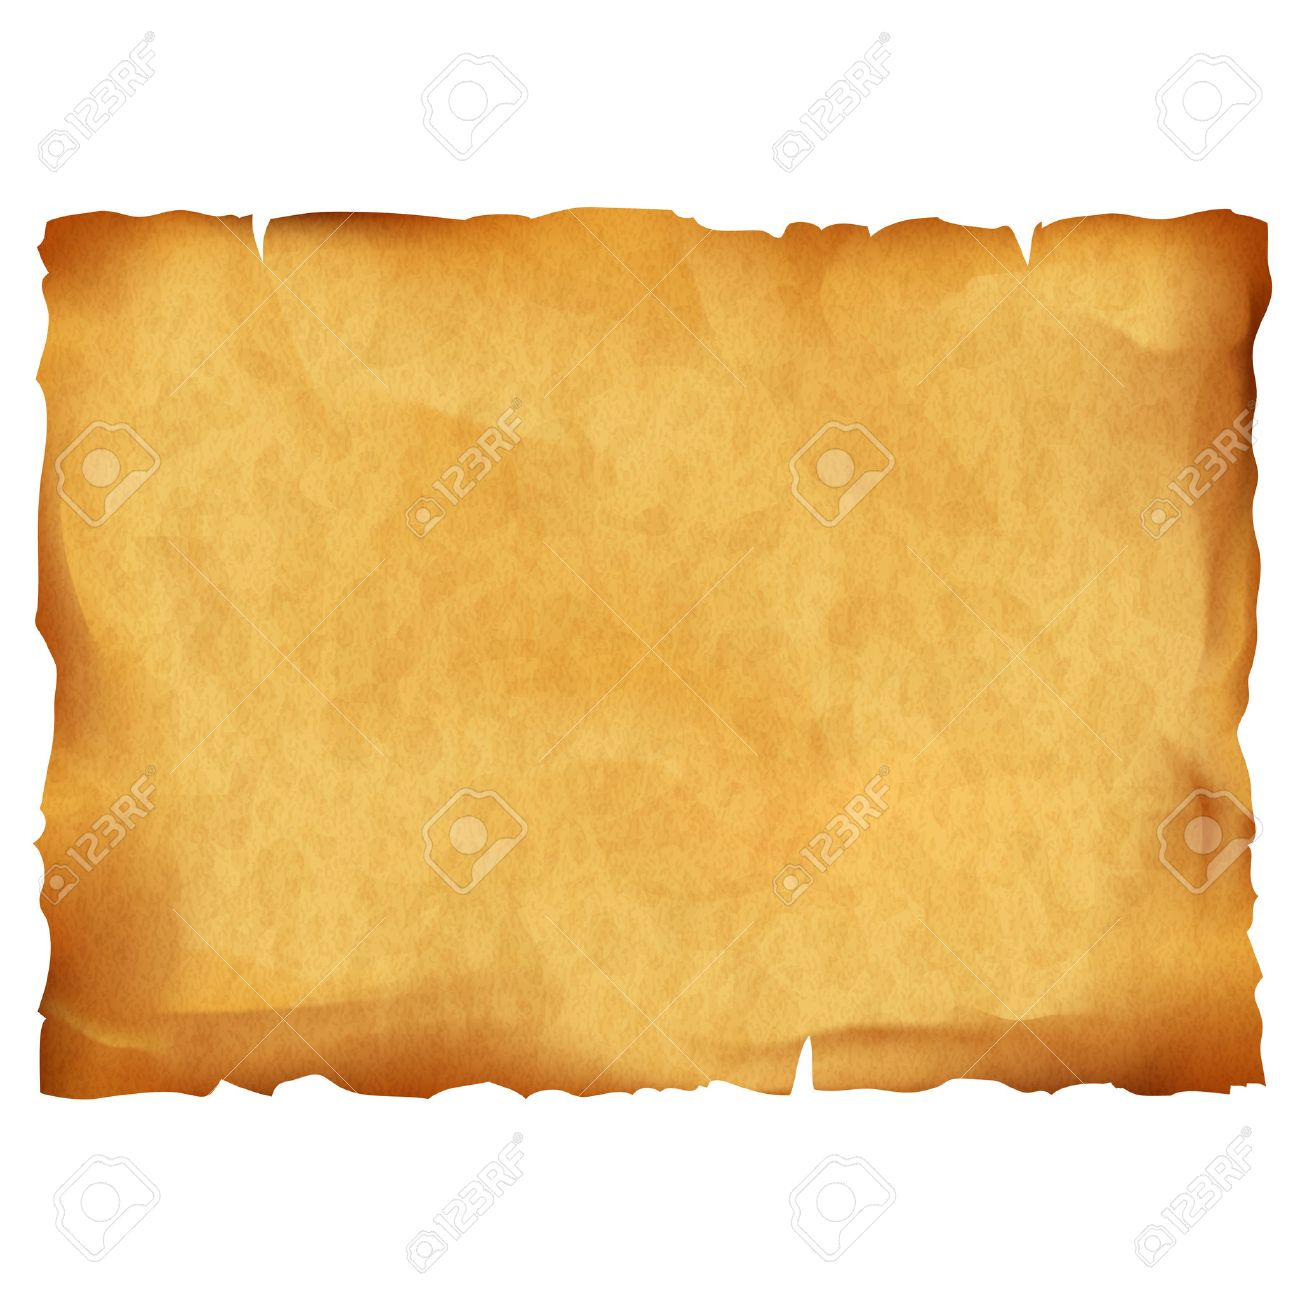 Old parchment isolated on white background. Stock vector illustration. - 54148588